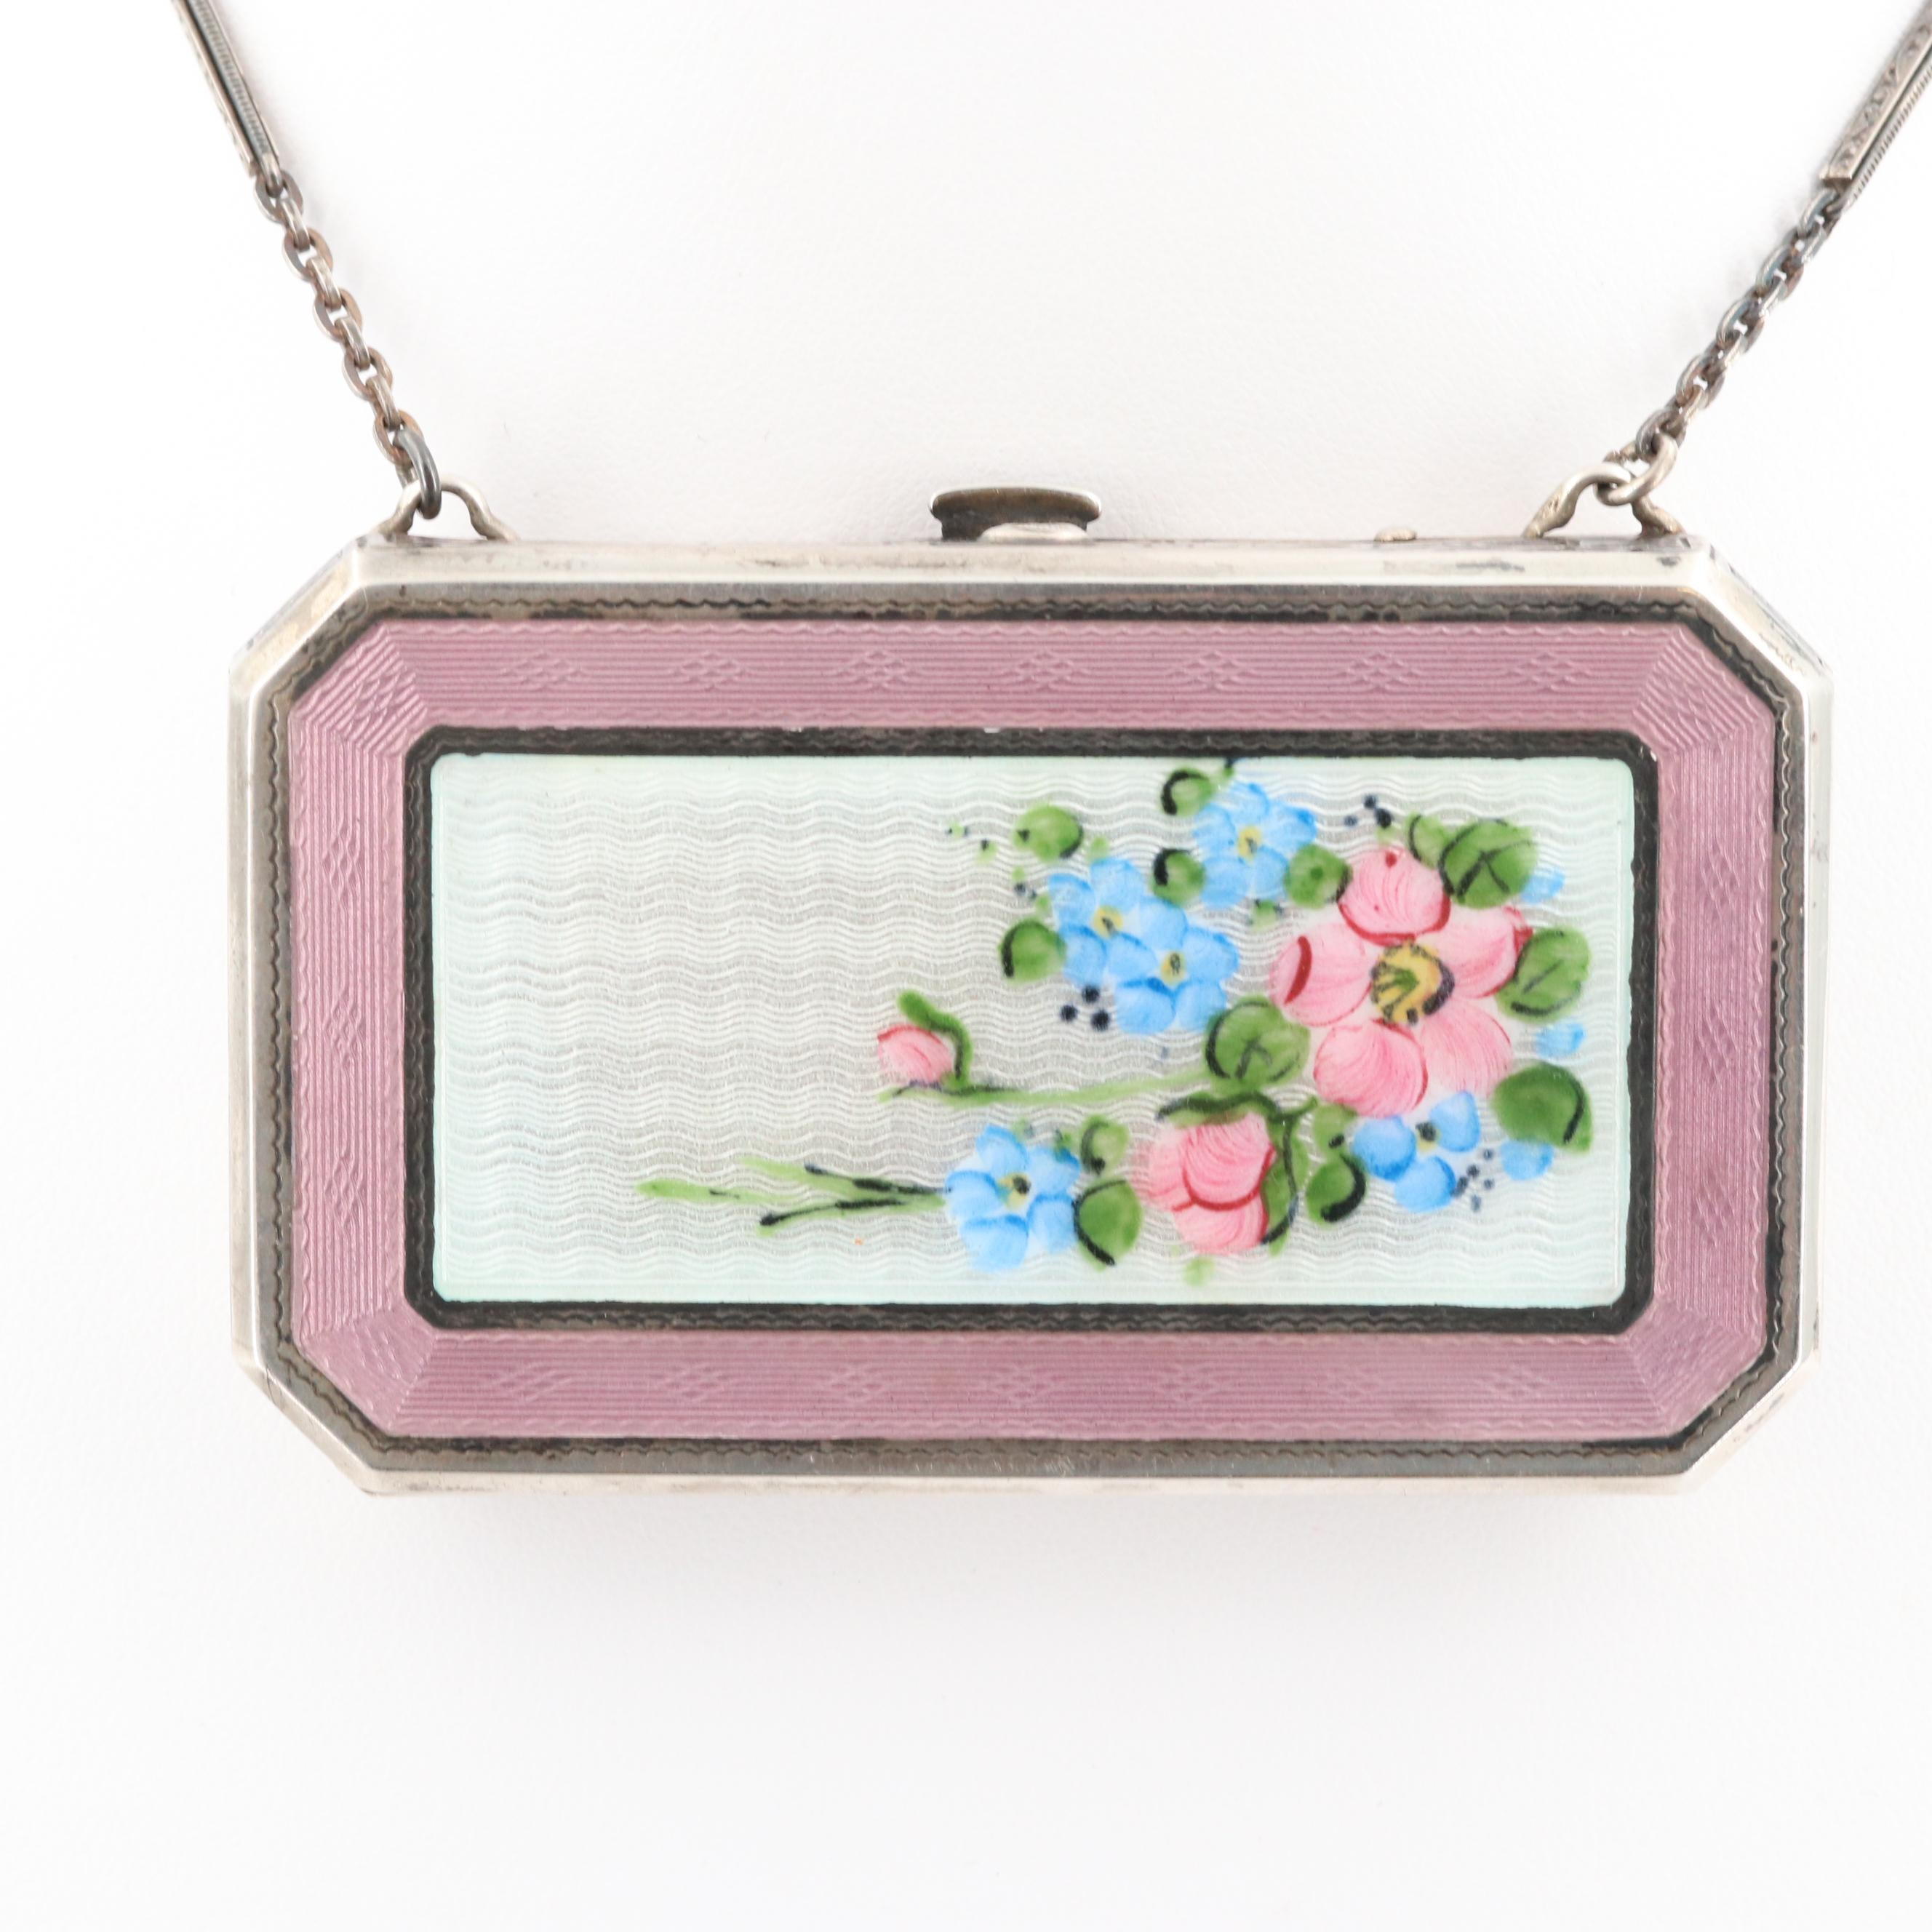 Elgin Sterling Silver Guilloche Enameled Compact Purse, Early 20th Century